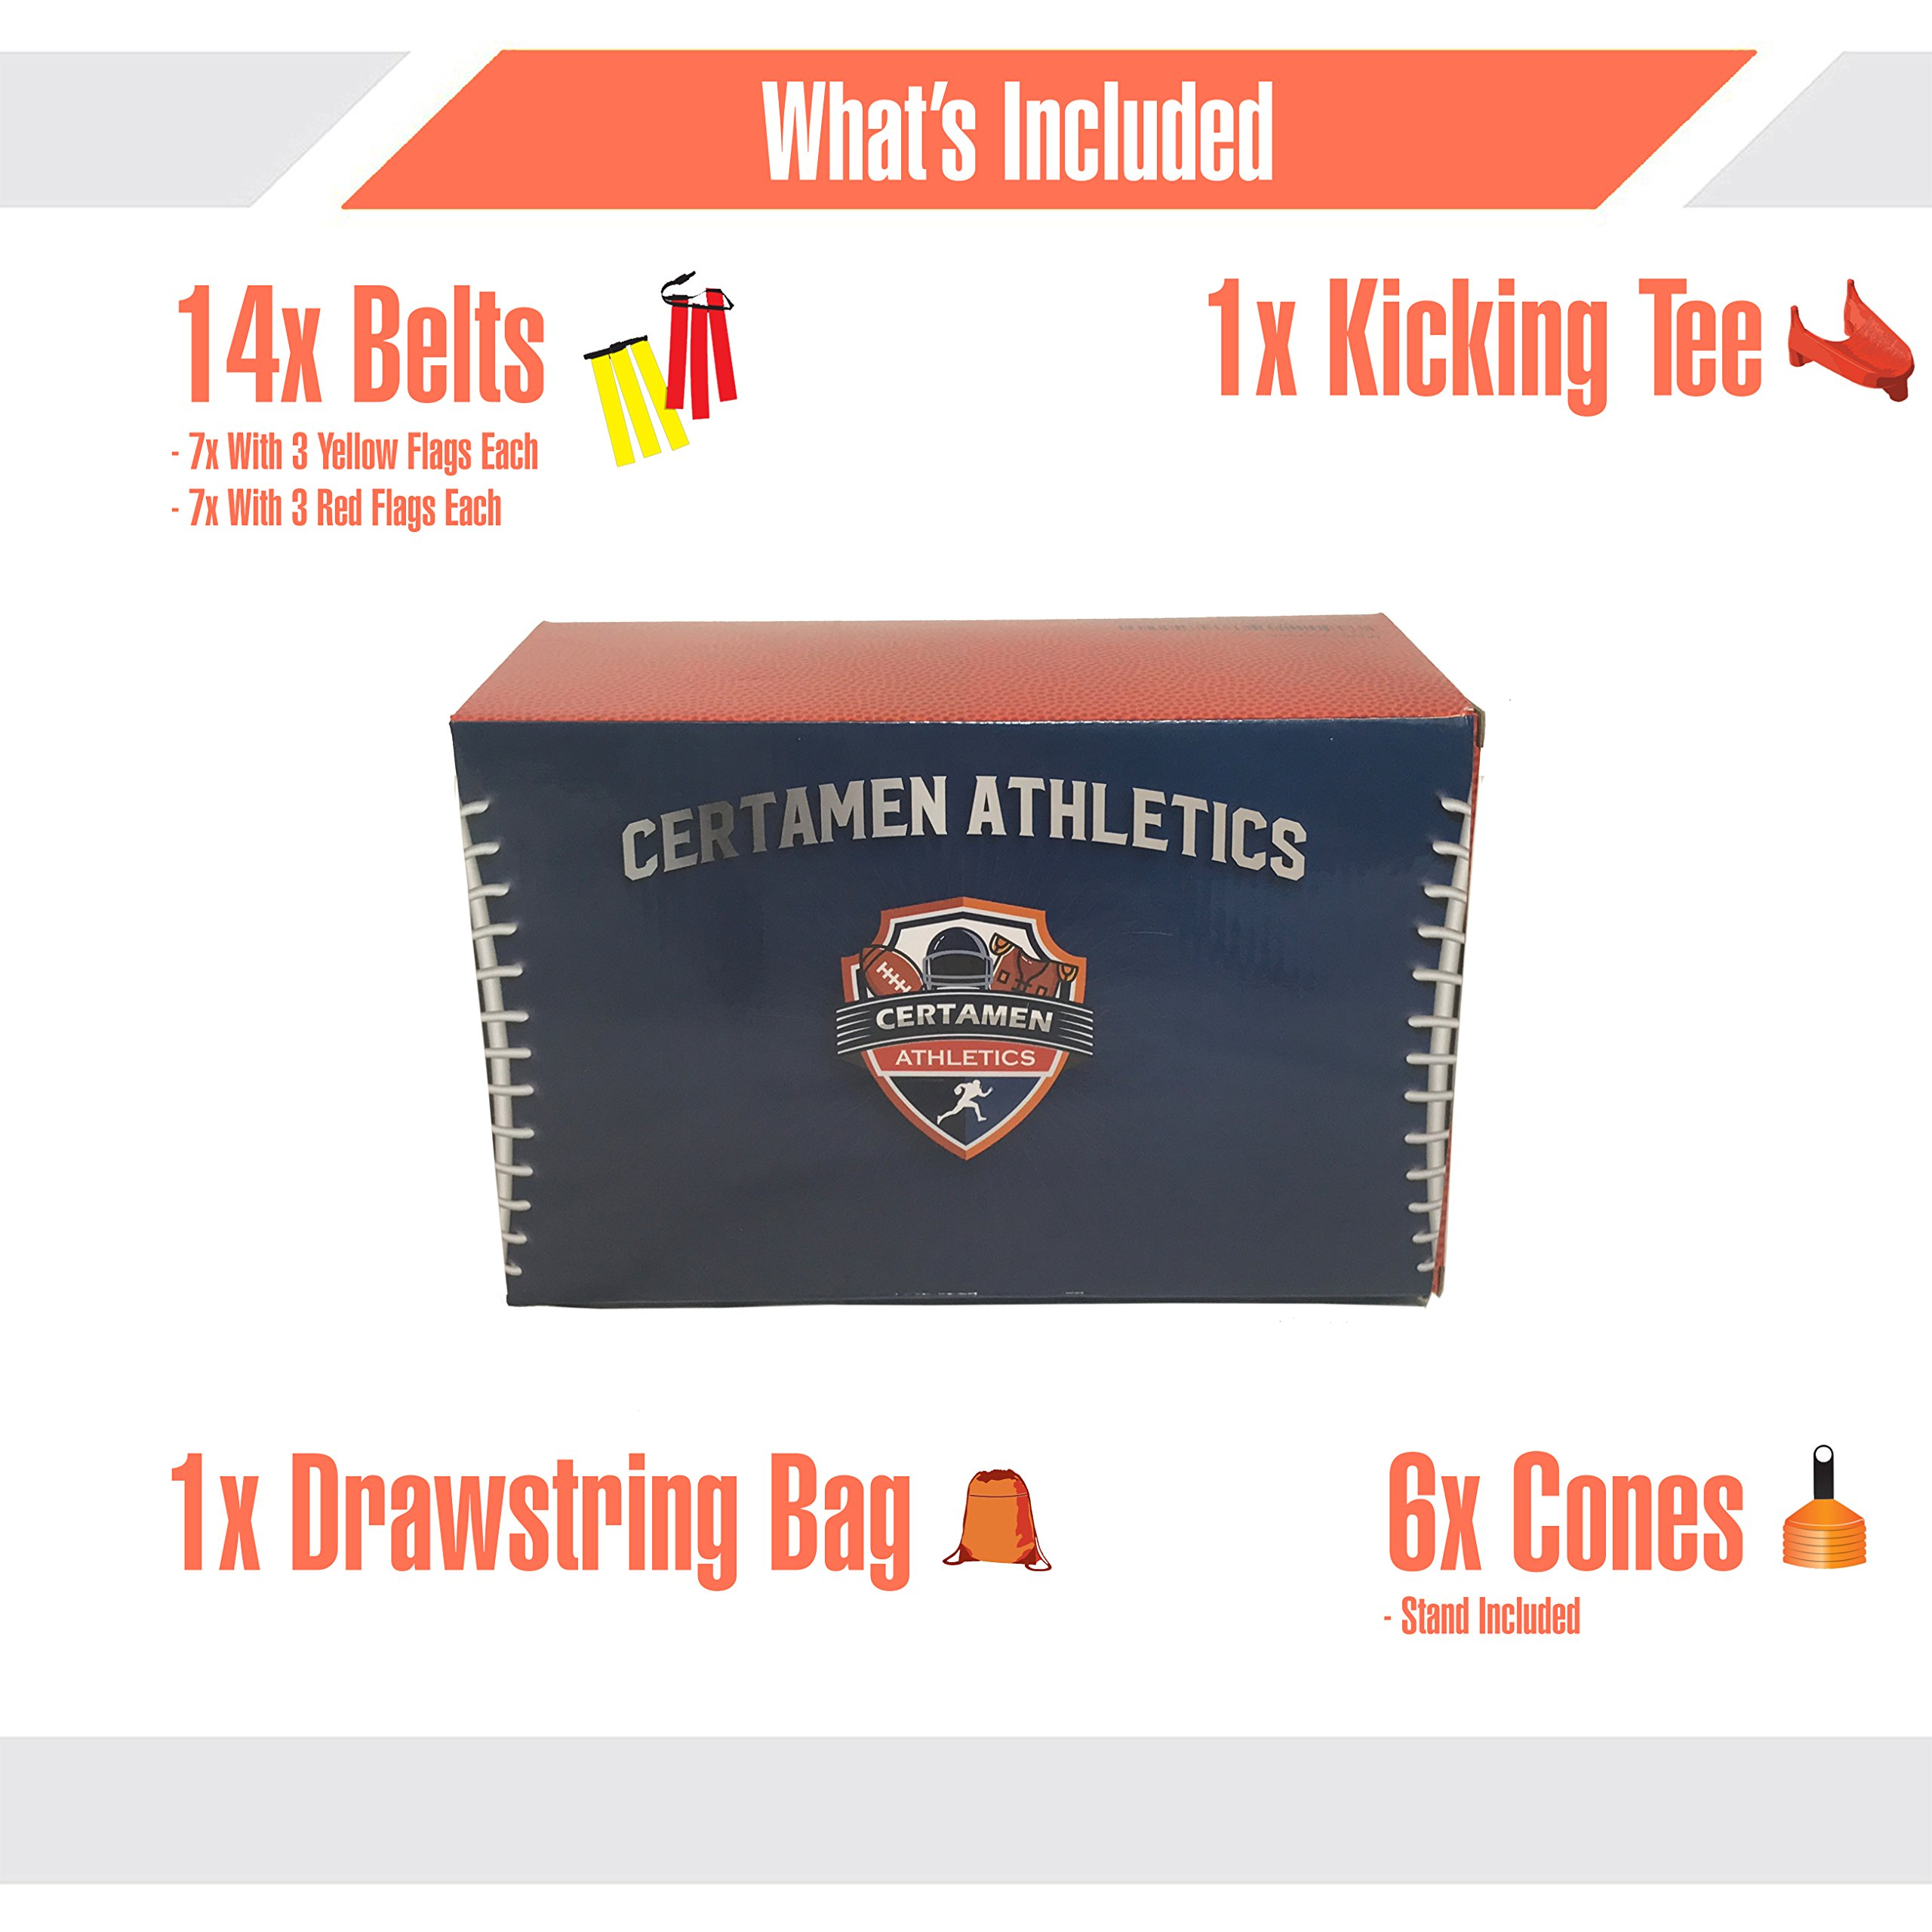 14 Player Flag Football Set - 65 Total Pieces, Football Flags For Kids And Adults, Youth Football Kit | Includes 14 Belts, 3 Flags Each, 6 Cones And Stand, Carrying Bag And a BONUS Kicking Tee by Certamen Athletics (Image #6)